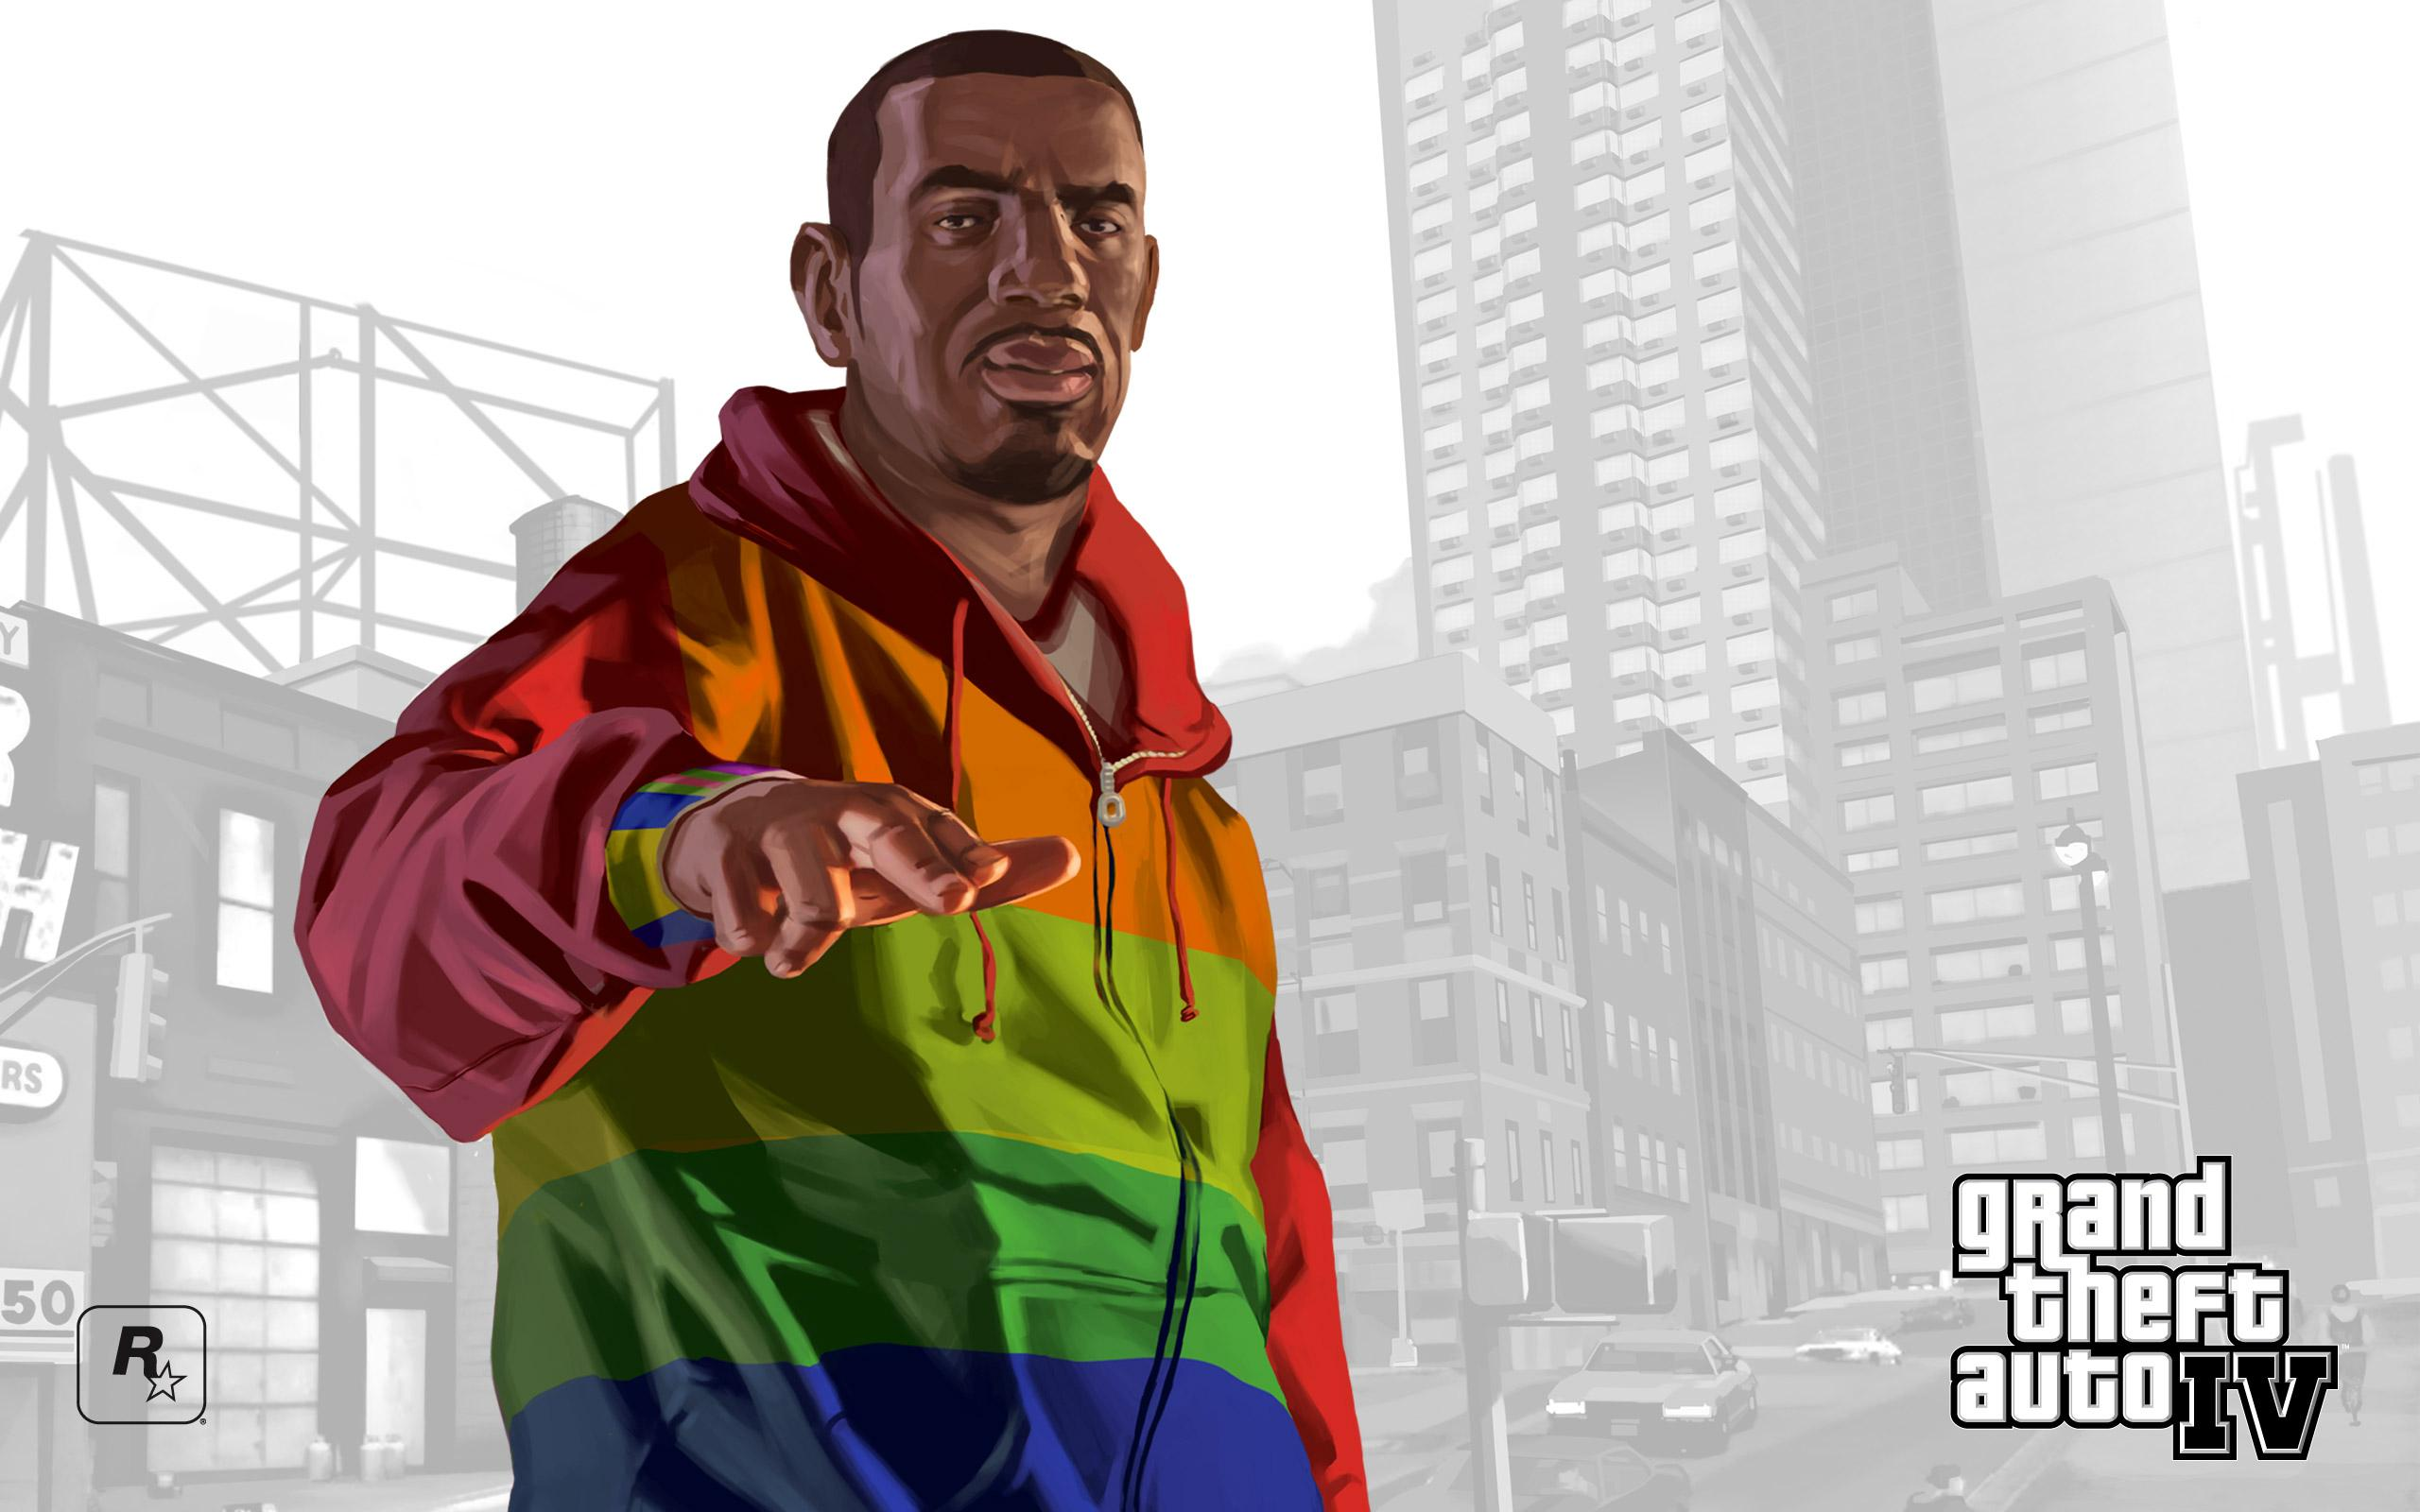 Обои GTA IV, Playboyx 2560x1600